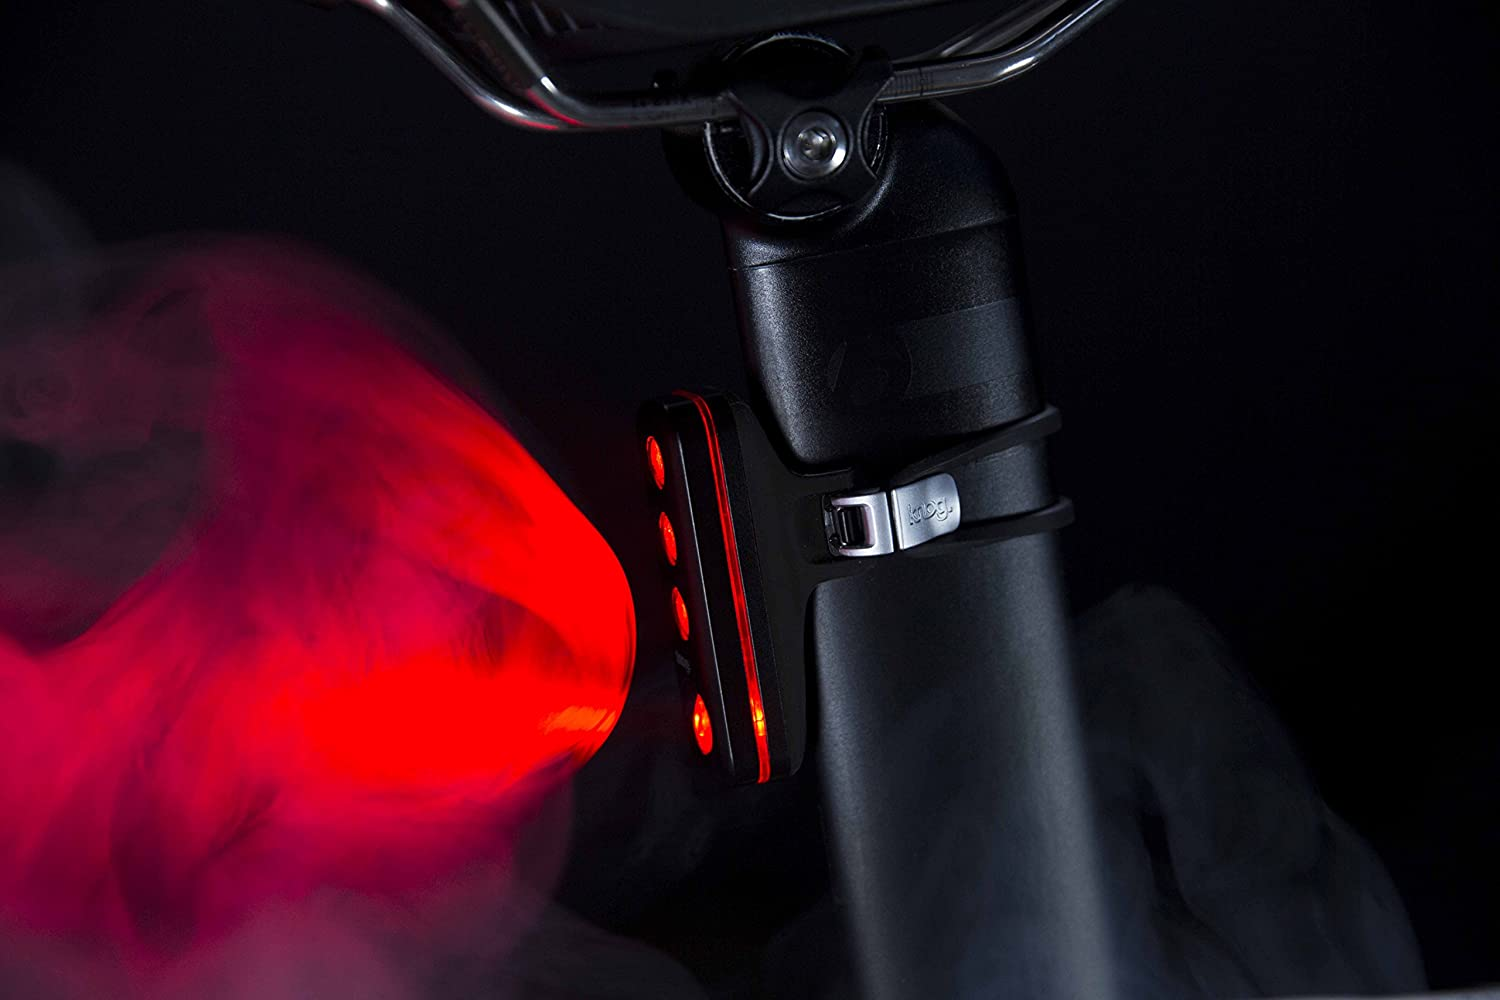 41c52212283 Amazon.com : Knog Blinder Road R70 Taillight- Black, USB Rechargeable, LED,  Water Resistant, Commuter Friendly, Easy Mounting, Battery Saving, ...